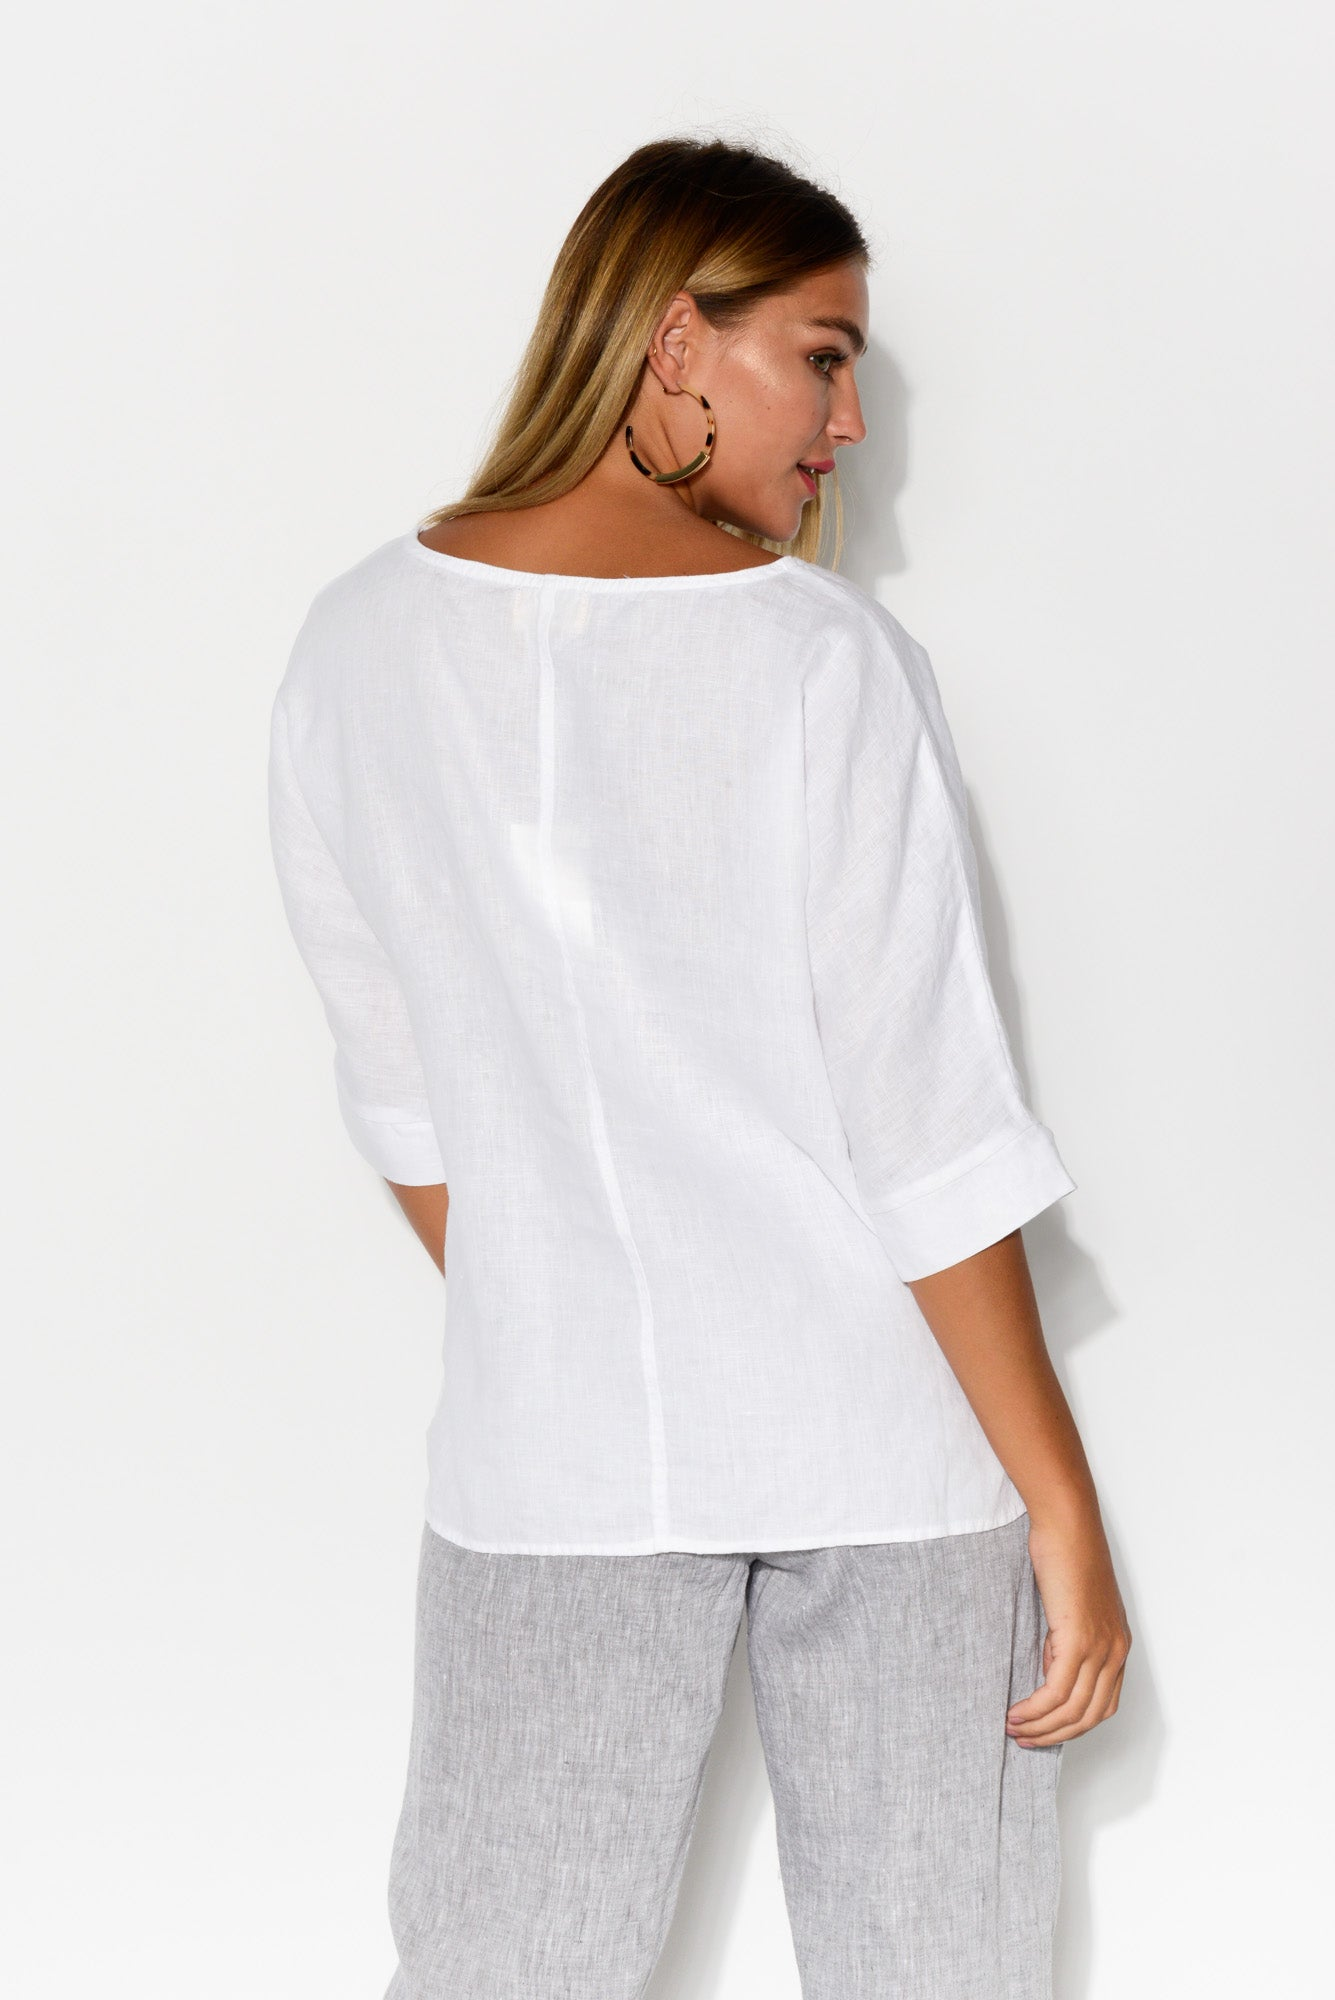 Sansa White Linen Top - Blue Bungalow